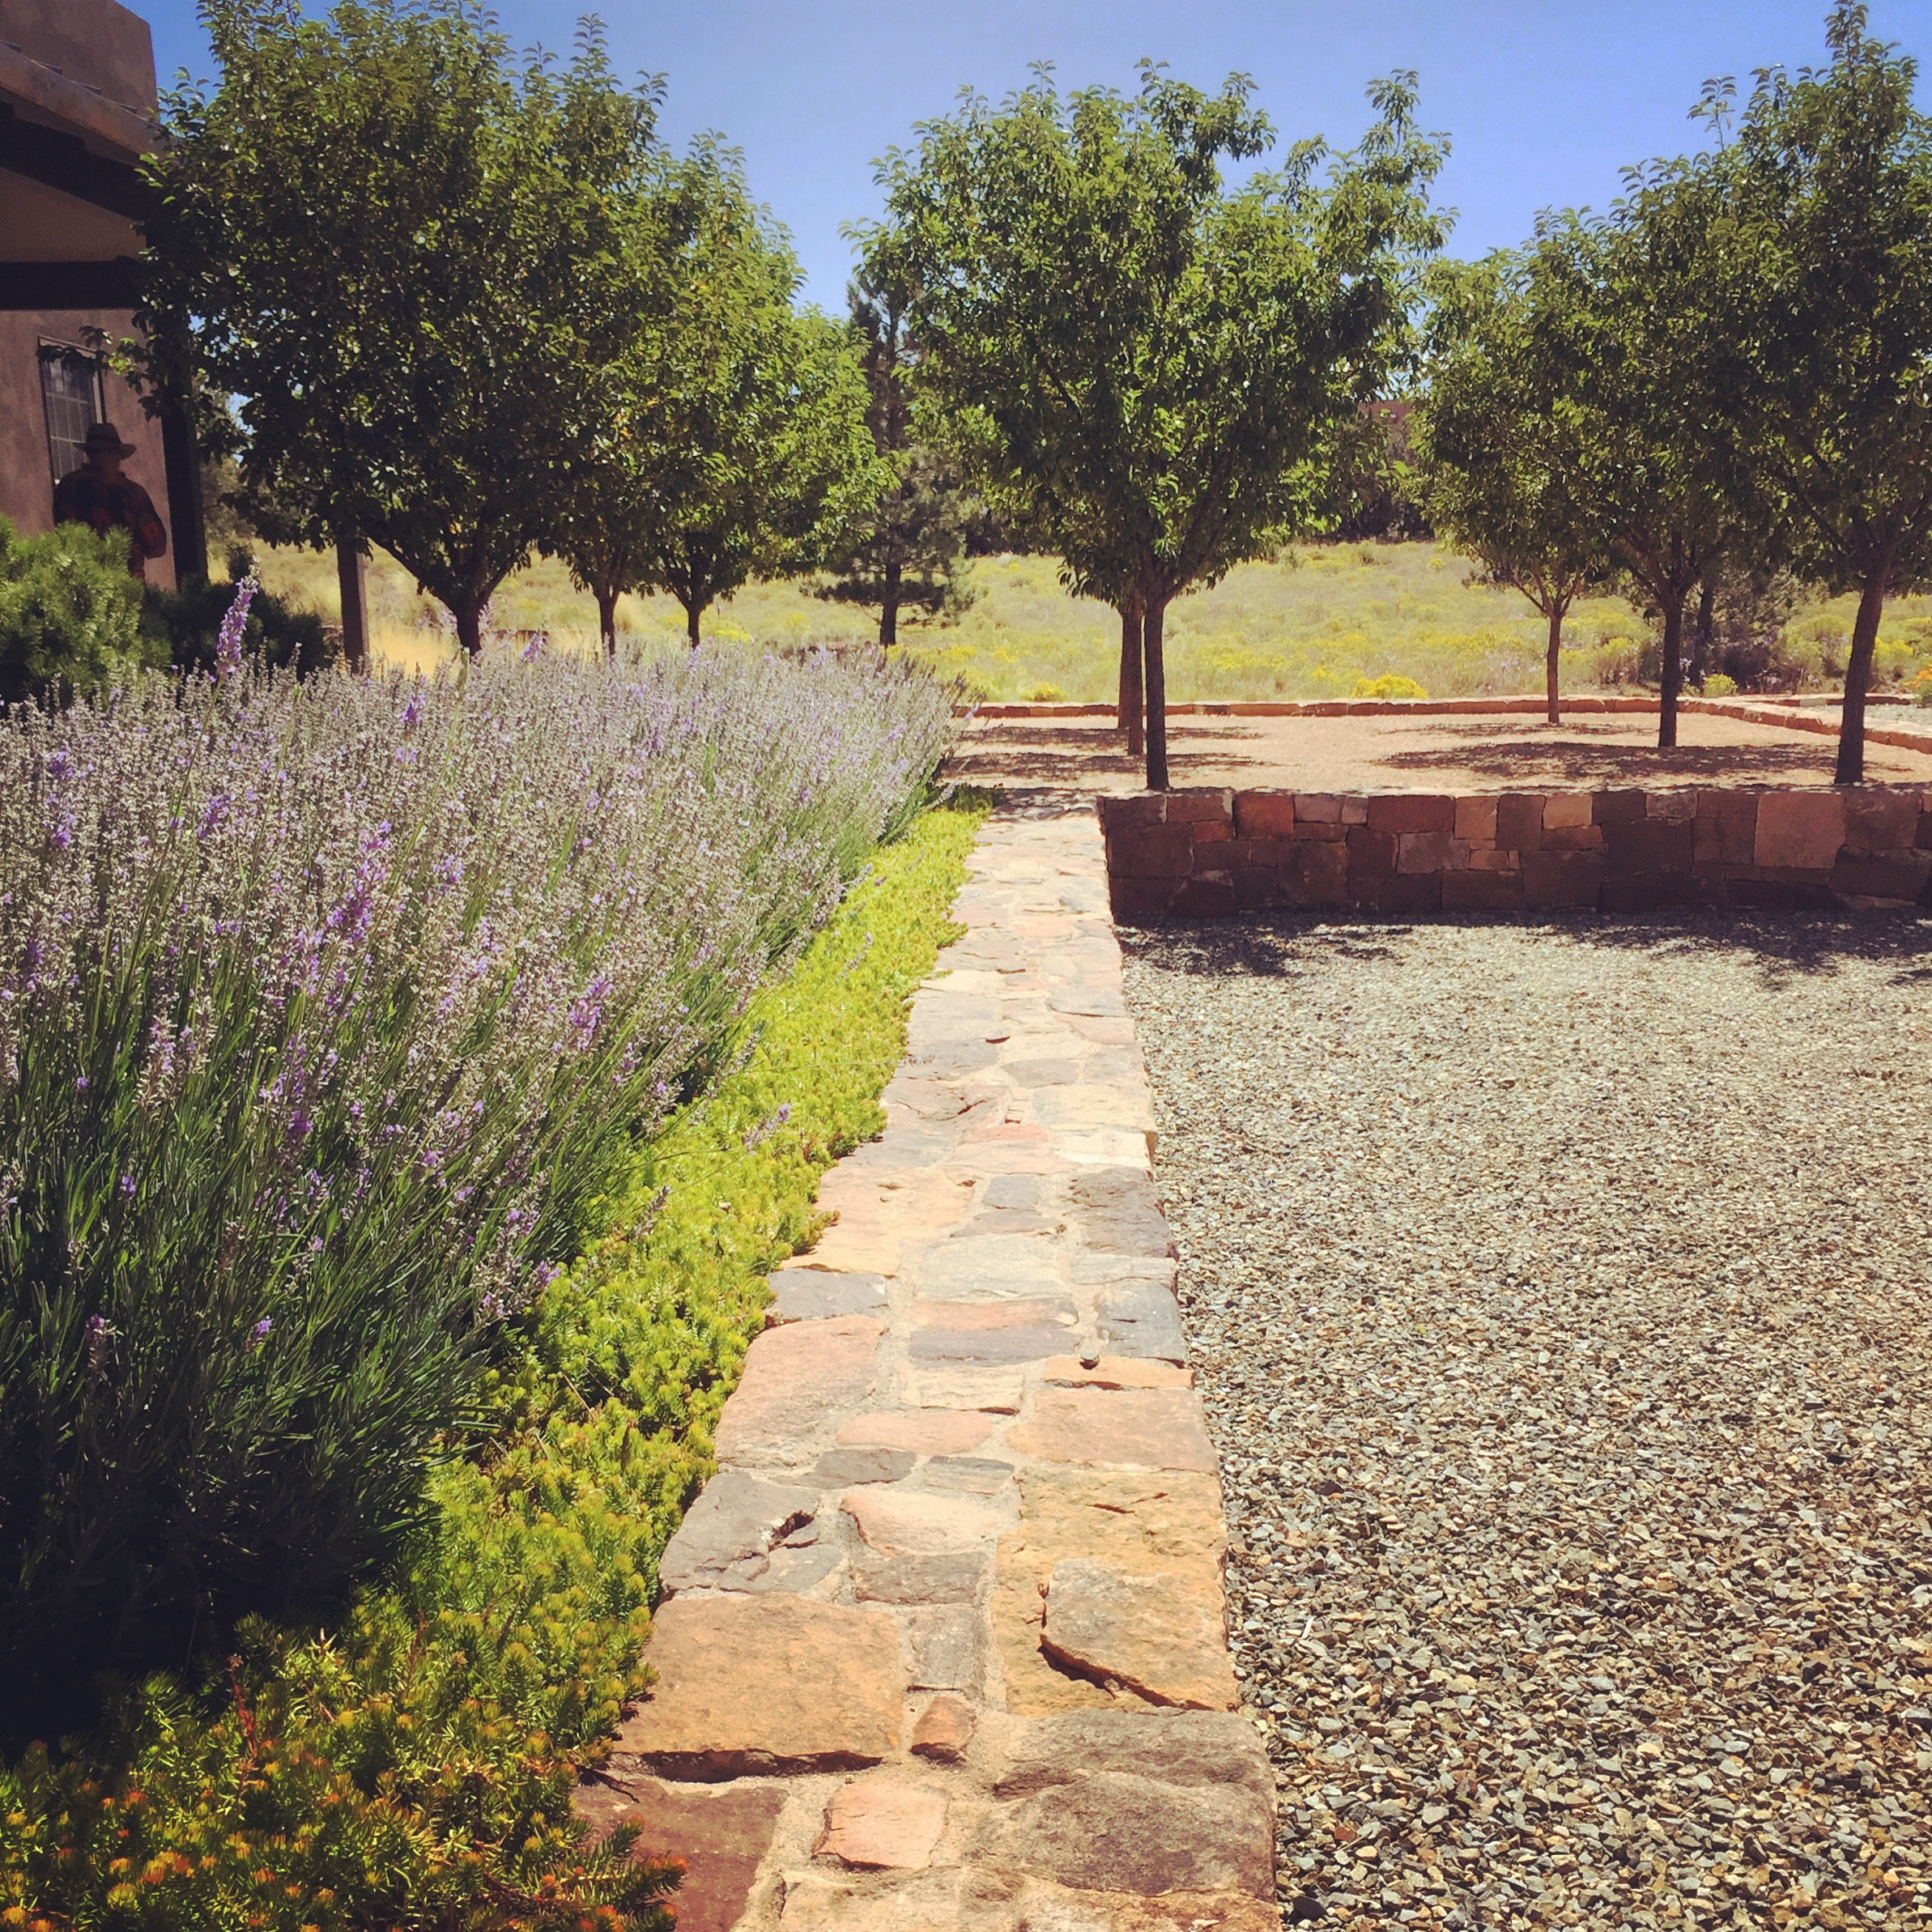 These lavender photos were taken in Santa Fe, New Mexico.